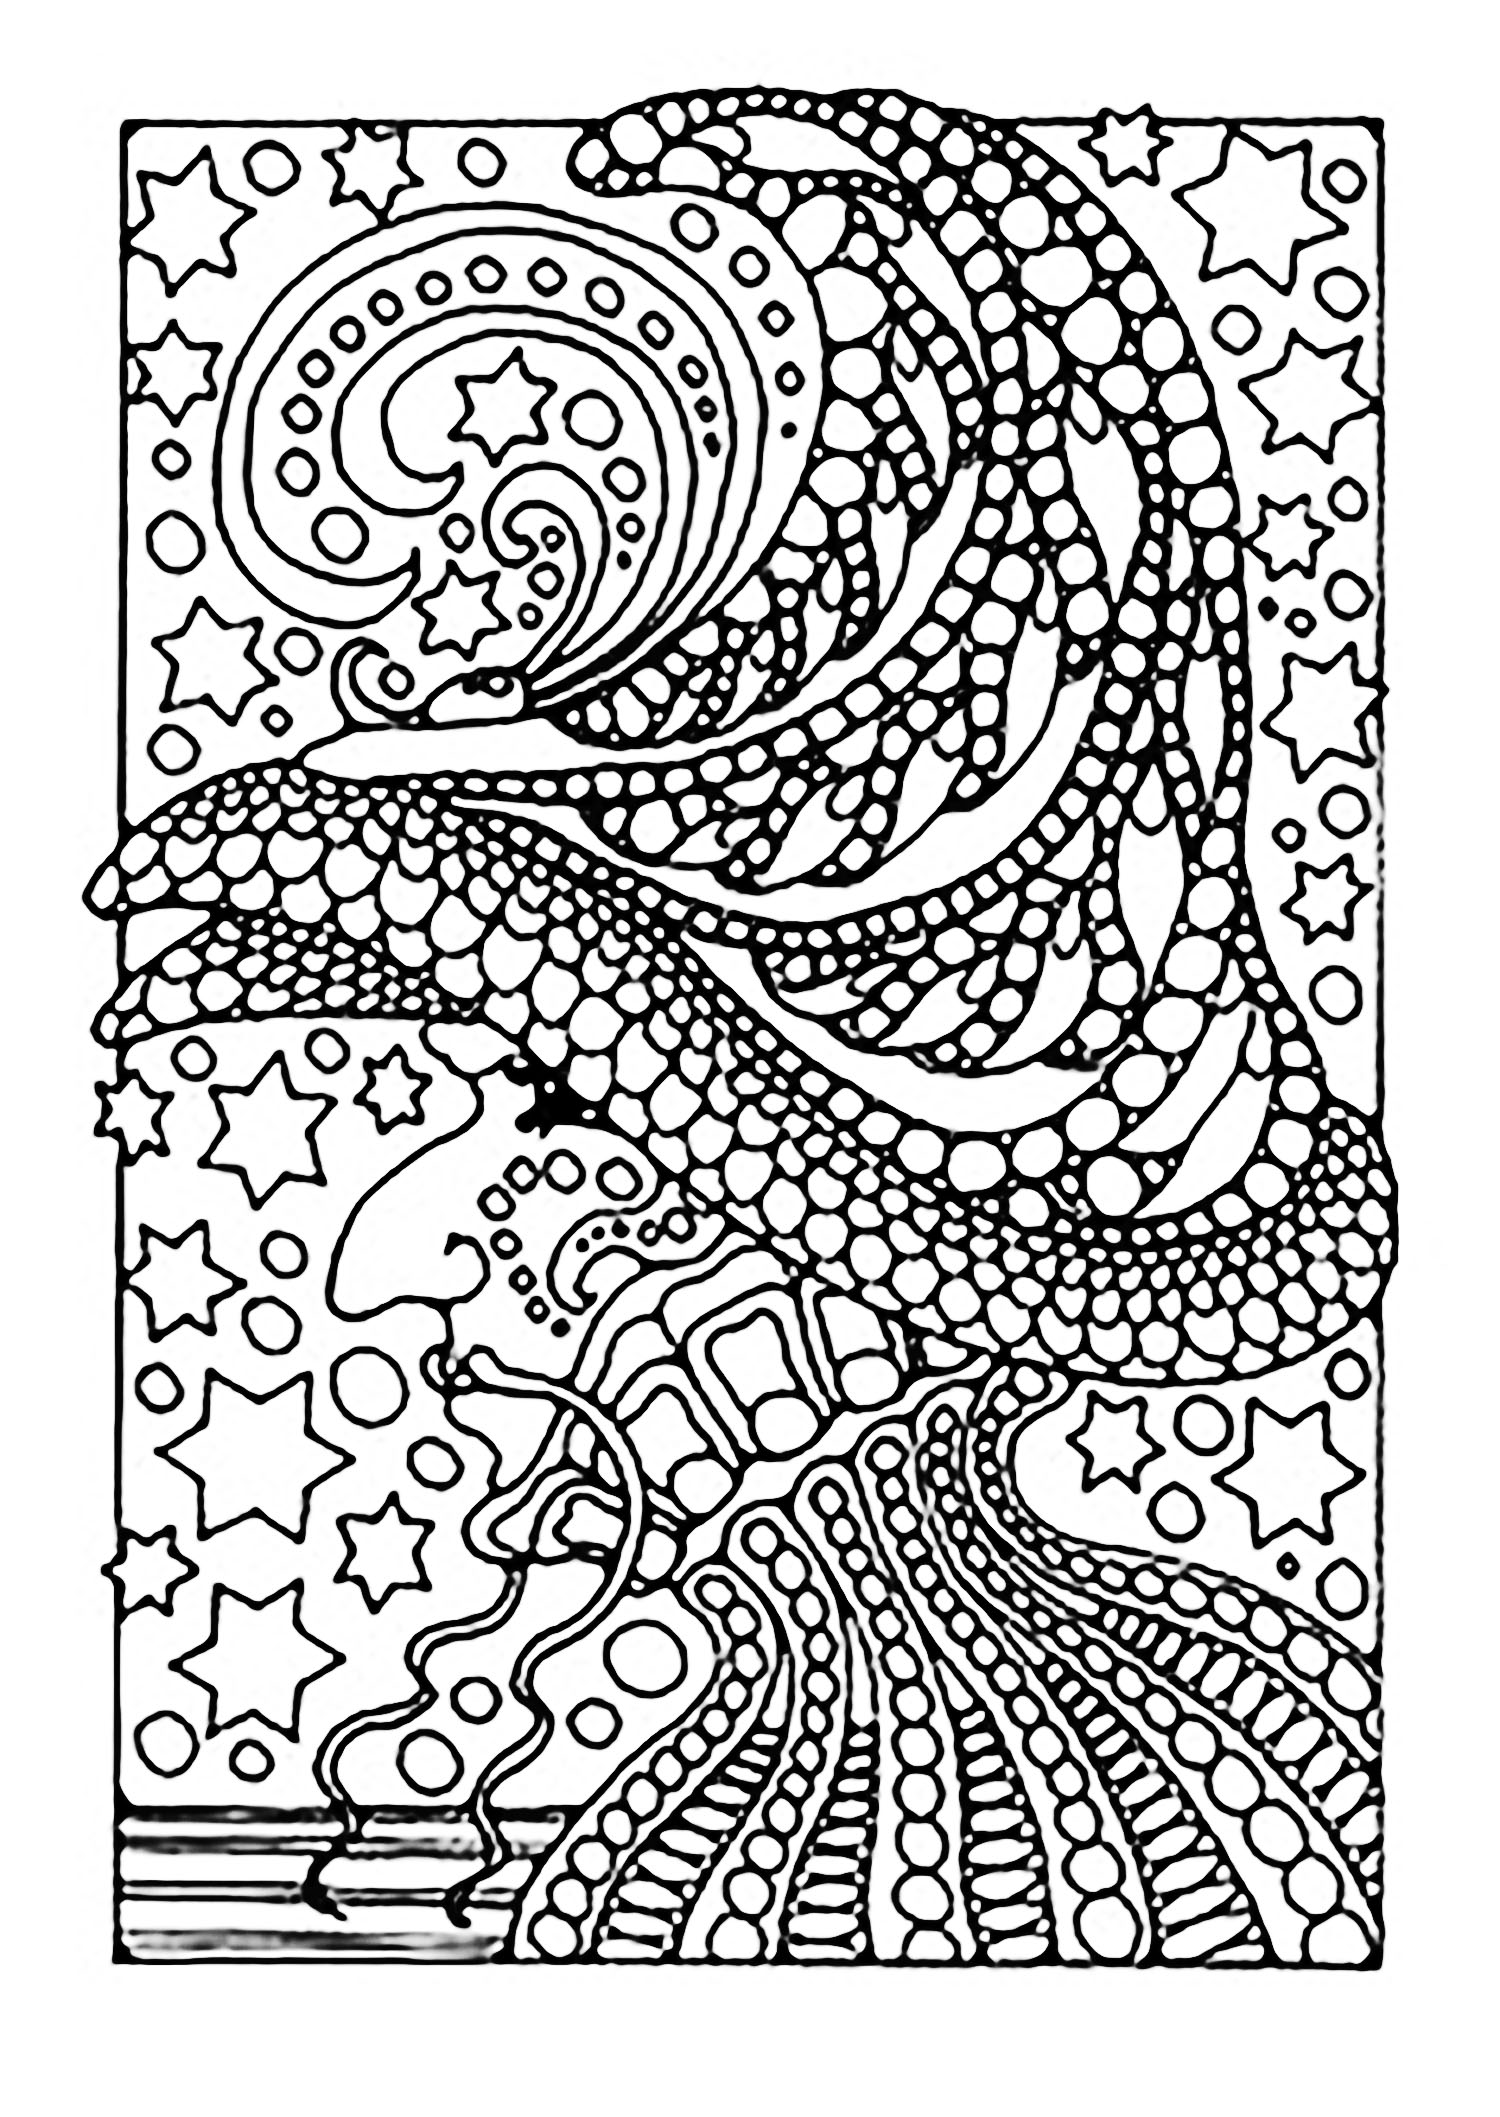 Scary Halloween Coloring Pages For Adults At Getdrawings Free Download